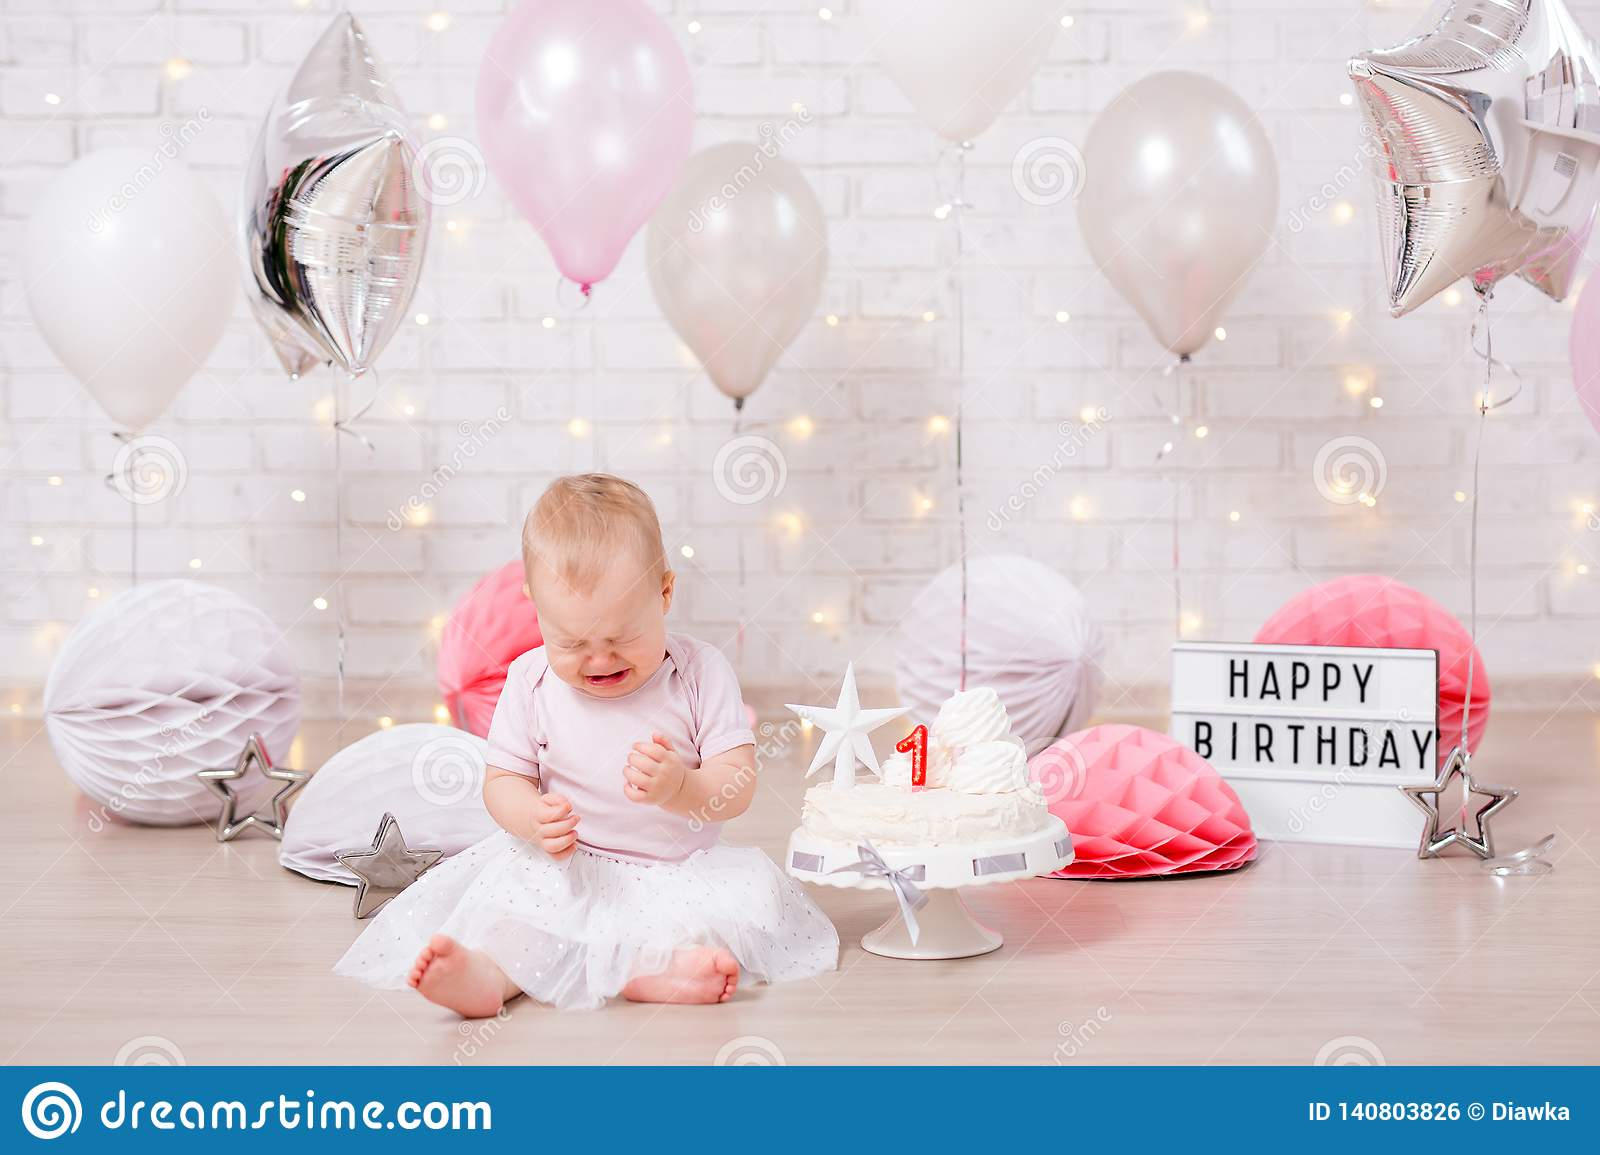 First Birthday Party Concept Sad Little Girl Crying With Cake Balloons And Birthday Decorations Stock Photo Image Of Cream Colorful 140803826